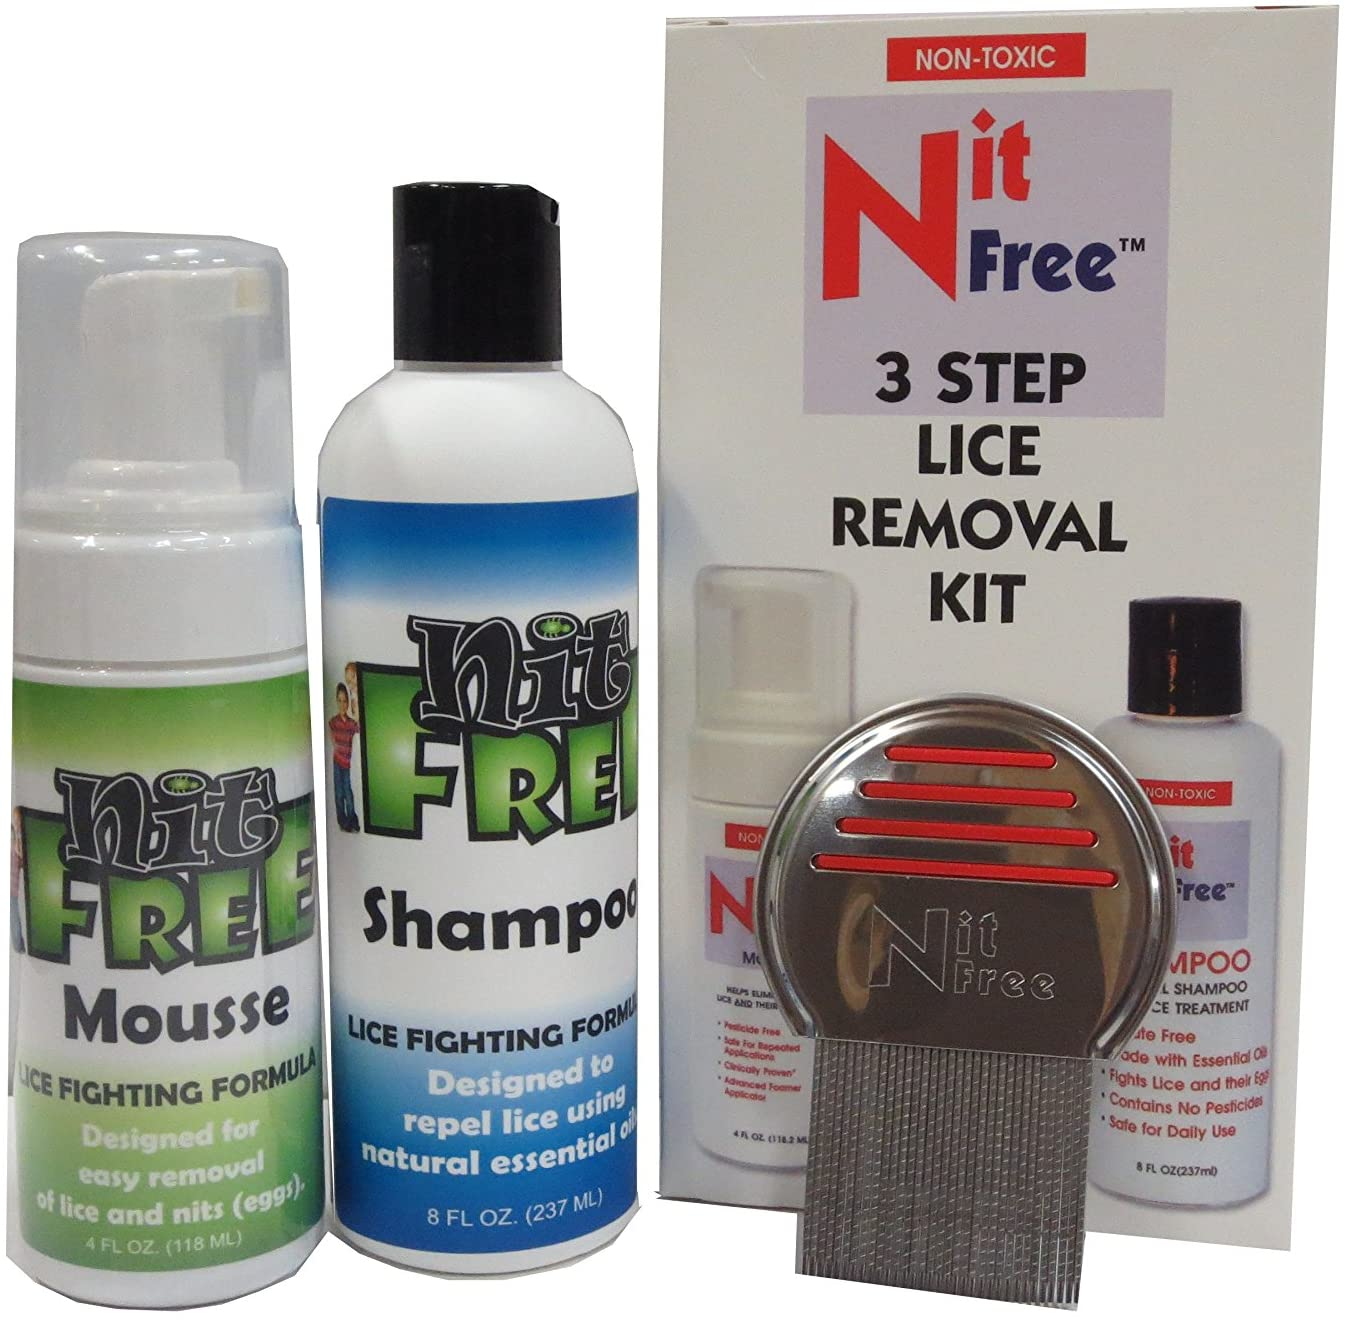 Nit Free 3 Step Lice Removal Kit with Shampoo